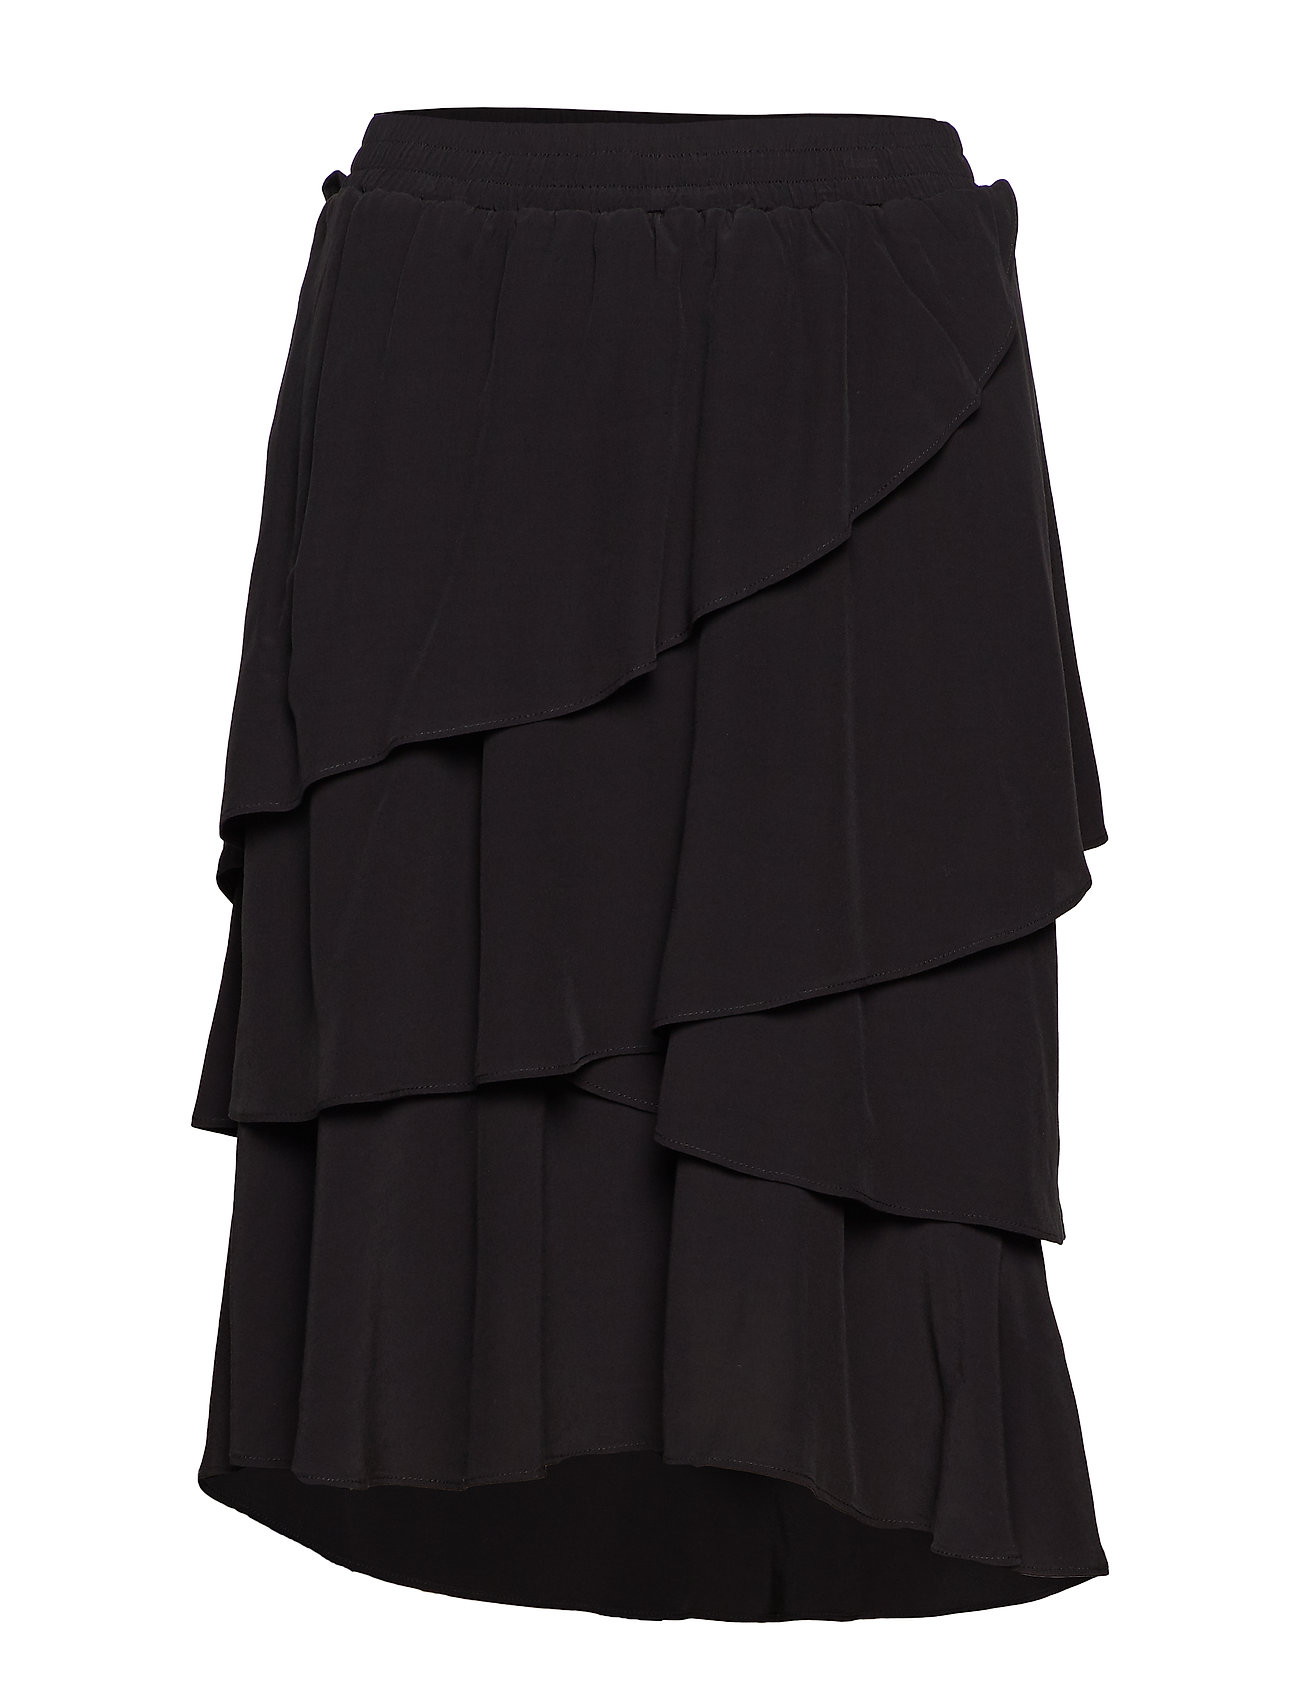 DESIGNERS, REMIX Nini Skirt - BLACK